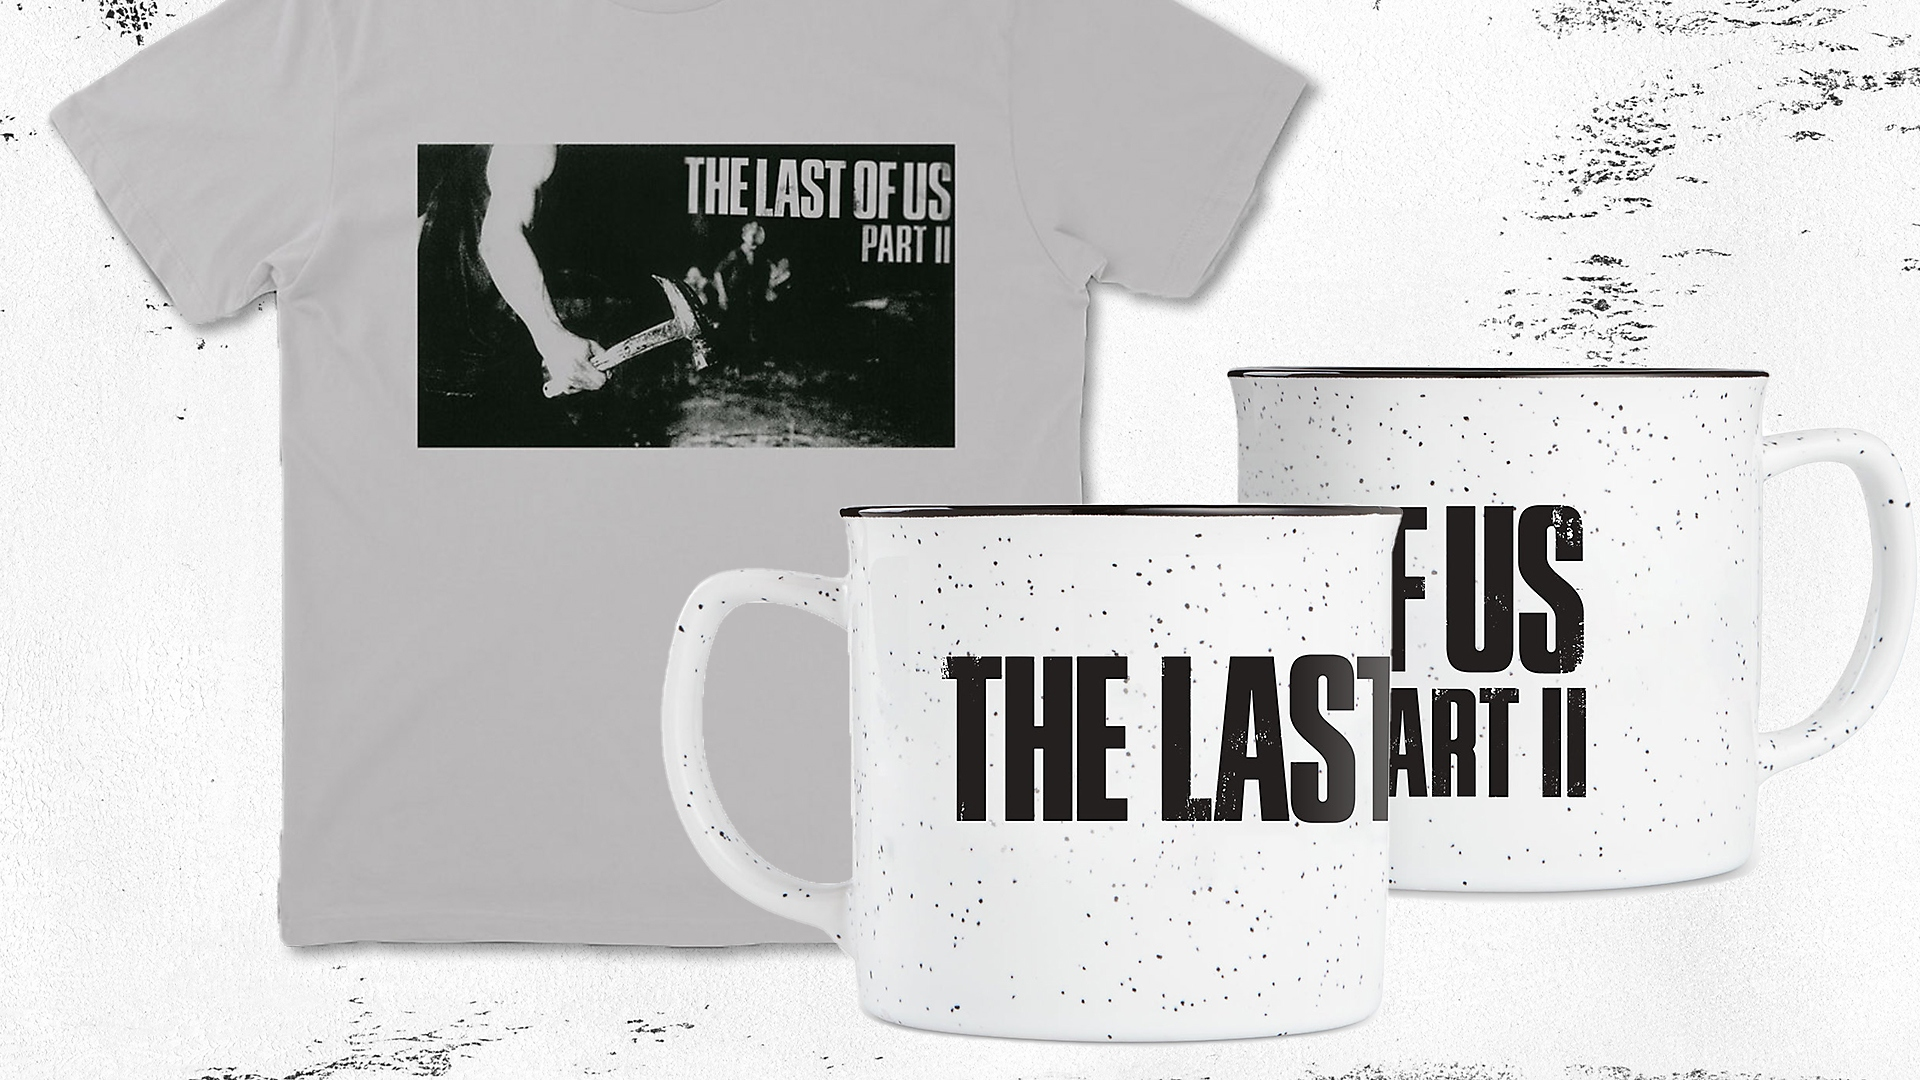 THE LAST OF US PART II MERCH FROM PLAYSTATION GEAR STORE